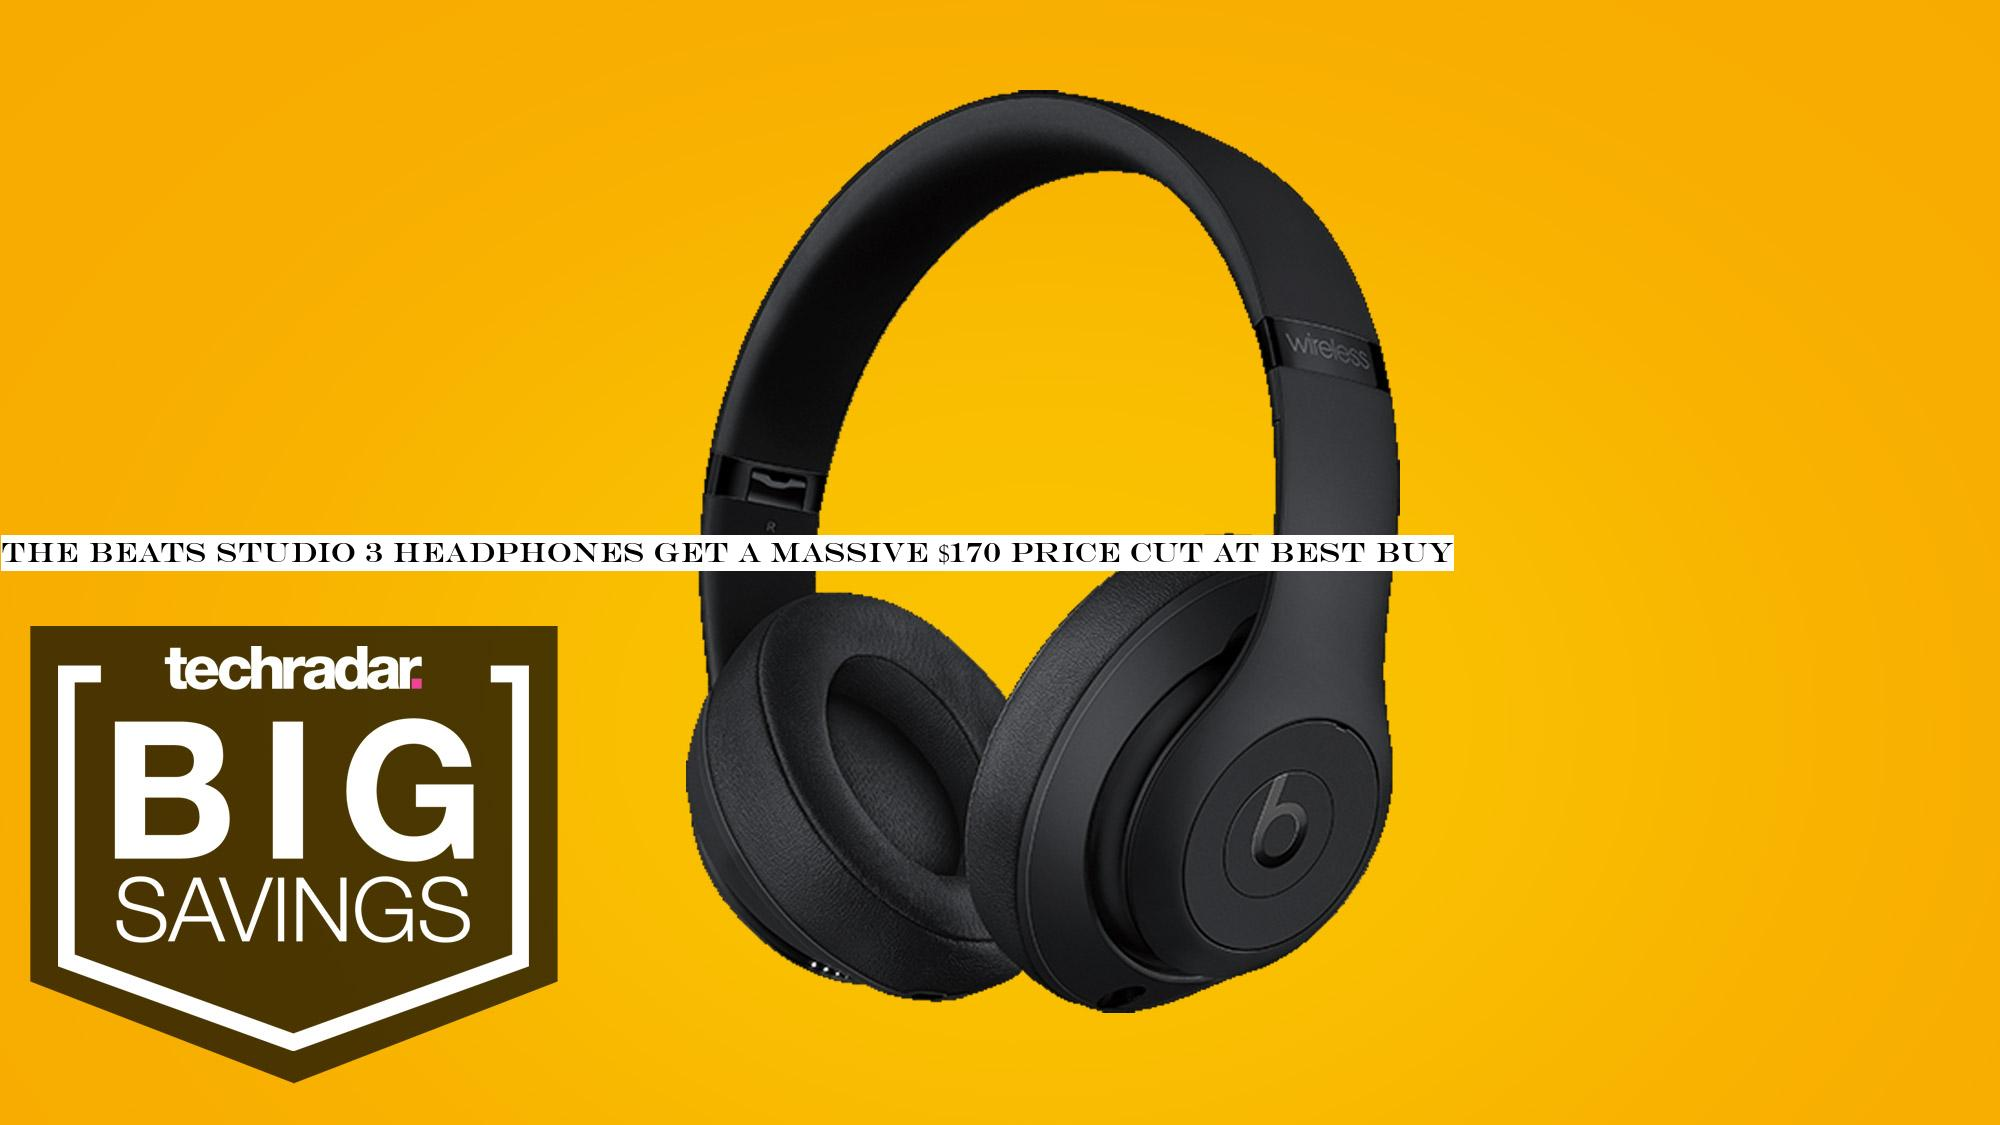 The Beats Studio 3 Headphones Get A Massive 170 Price Cut At Best Buy Theindiansubcontinent